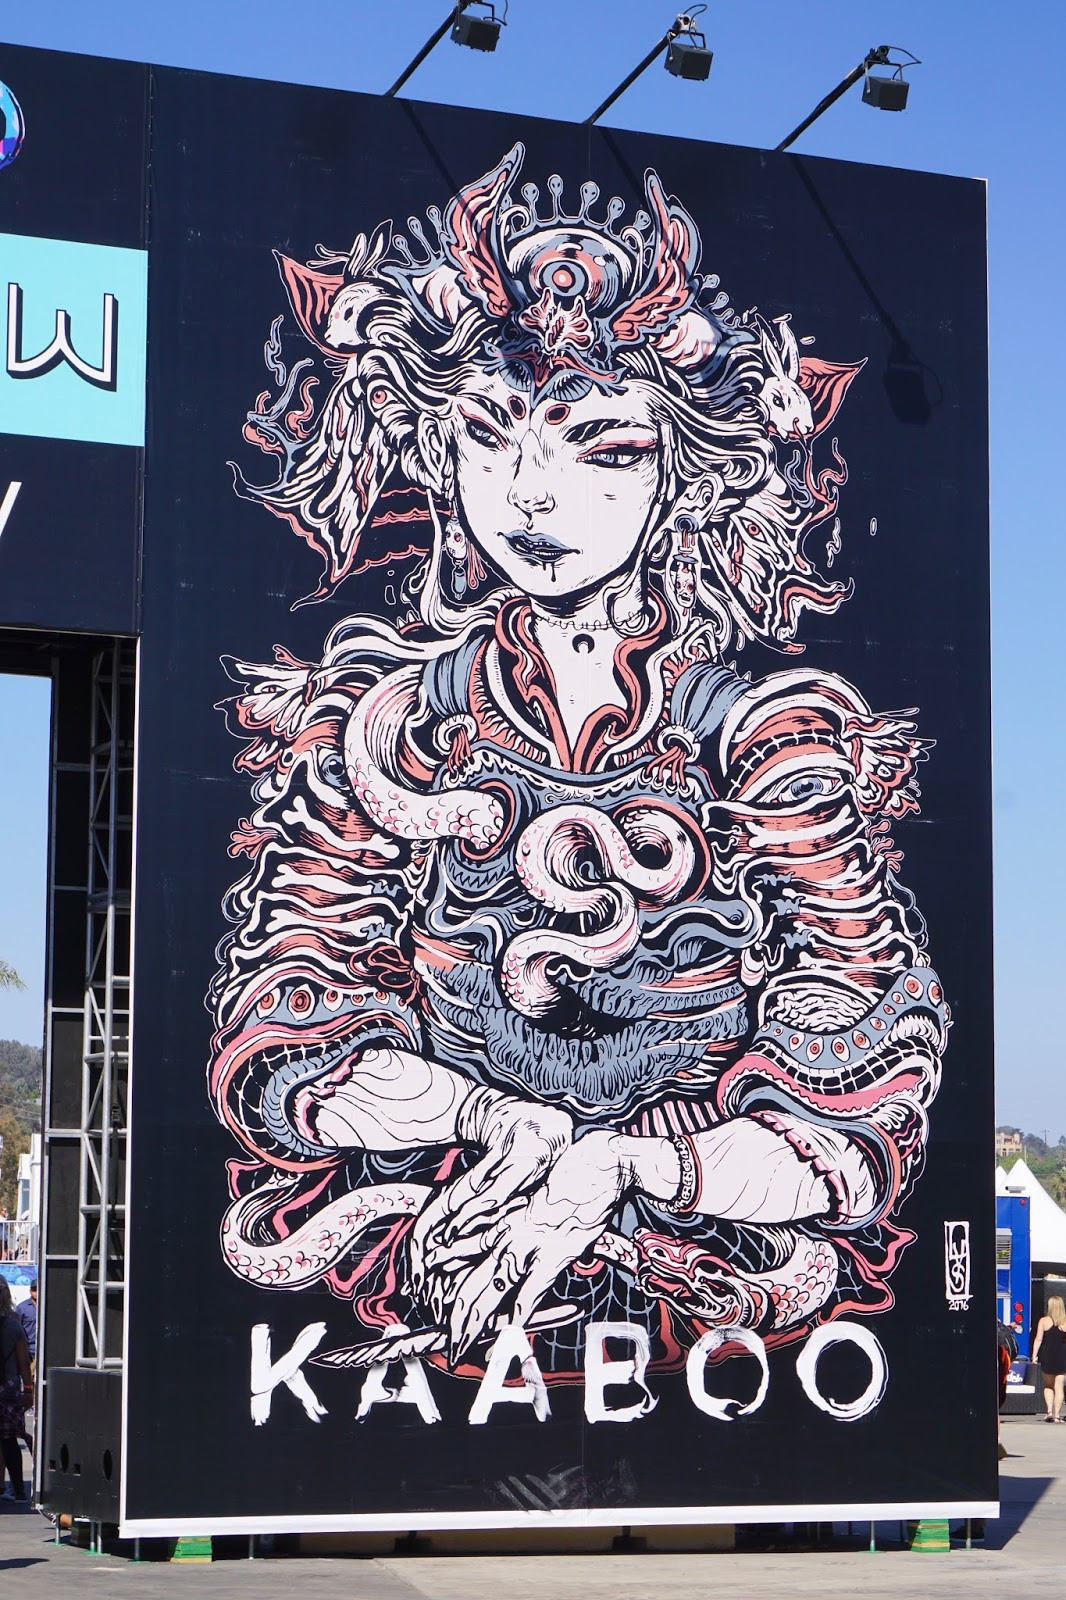 kaaboo artwork